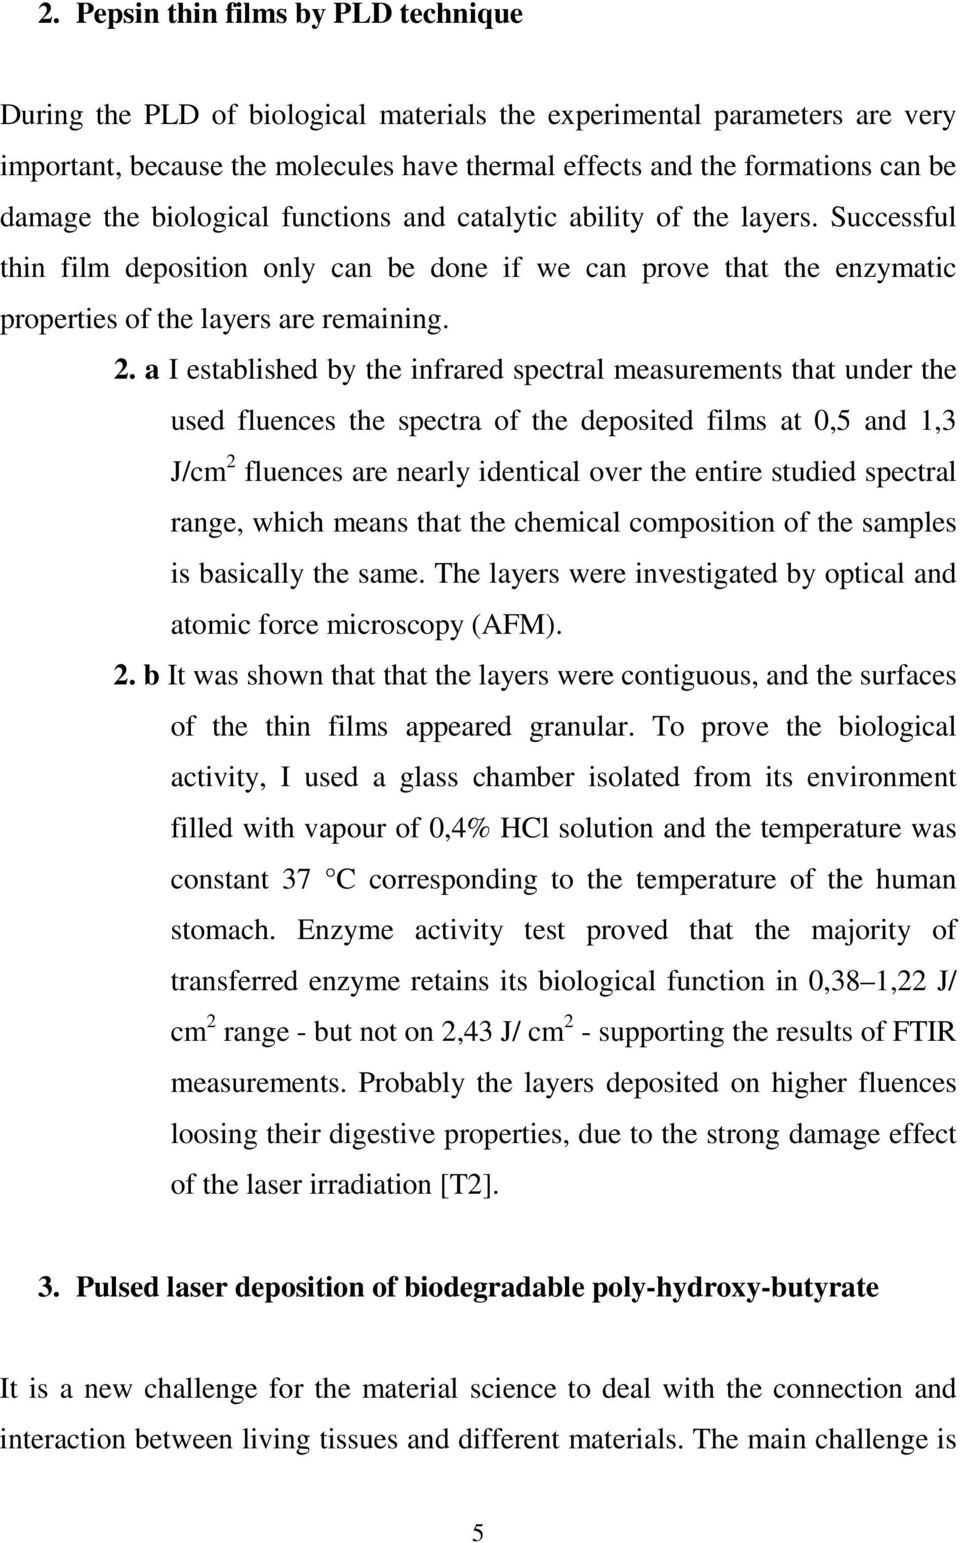 a I established by the infrared spectral measurements that under the used fluences the spectra of the deposited films at 0,5 and 1,3 J/cm 2 fluences are nearly identical over the entire studied